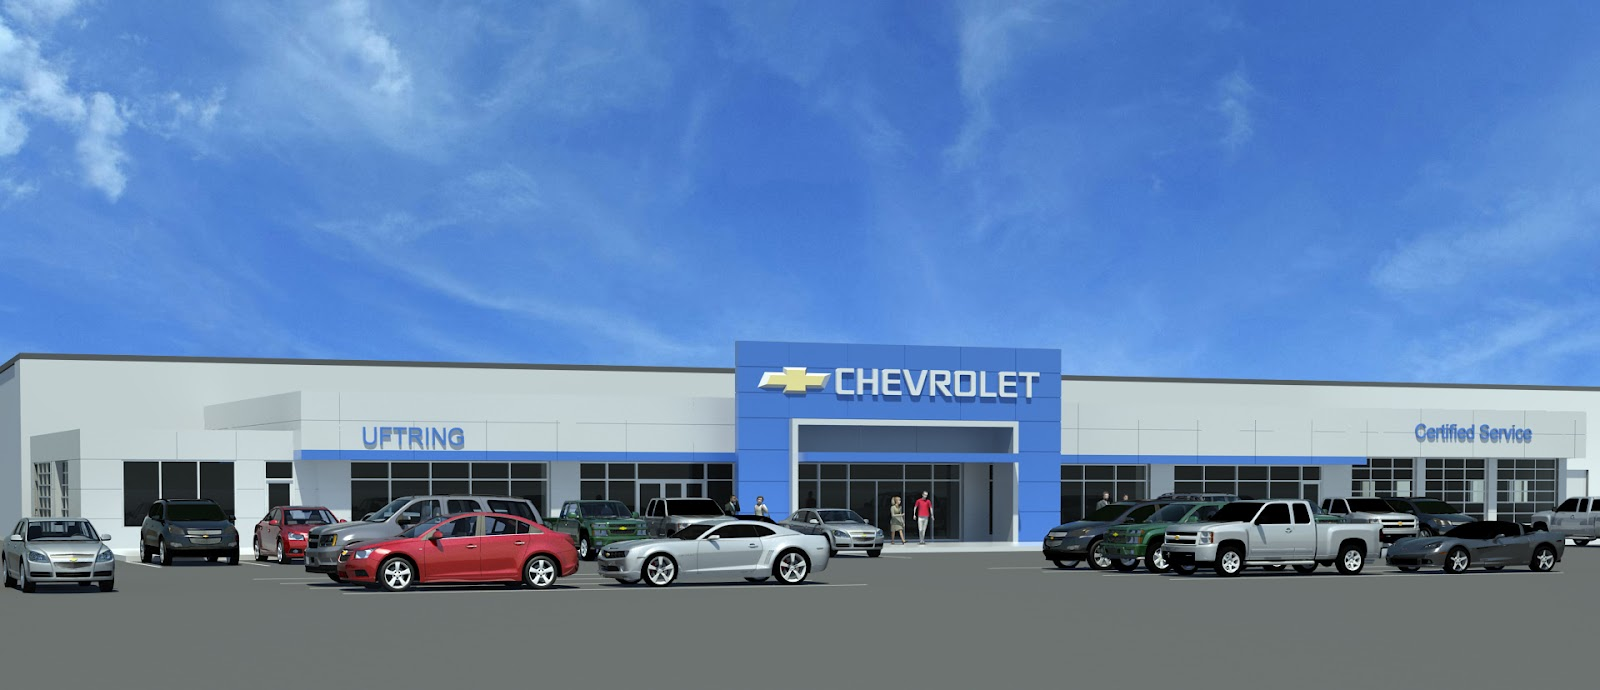 P.J. Hoerr, Inc.: Uftring Chevrolet - Washington, IL